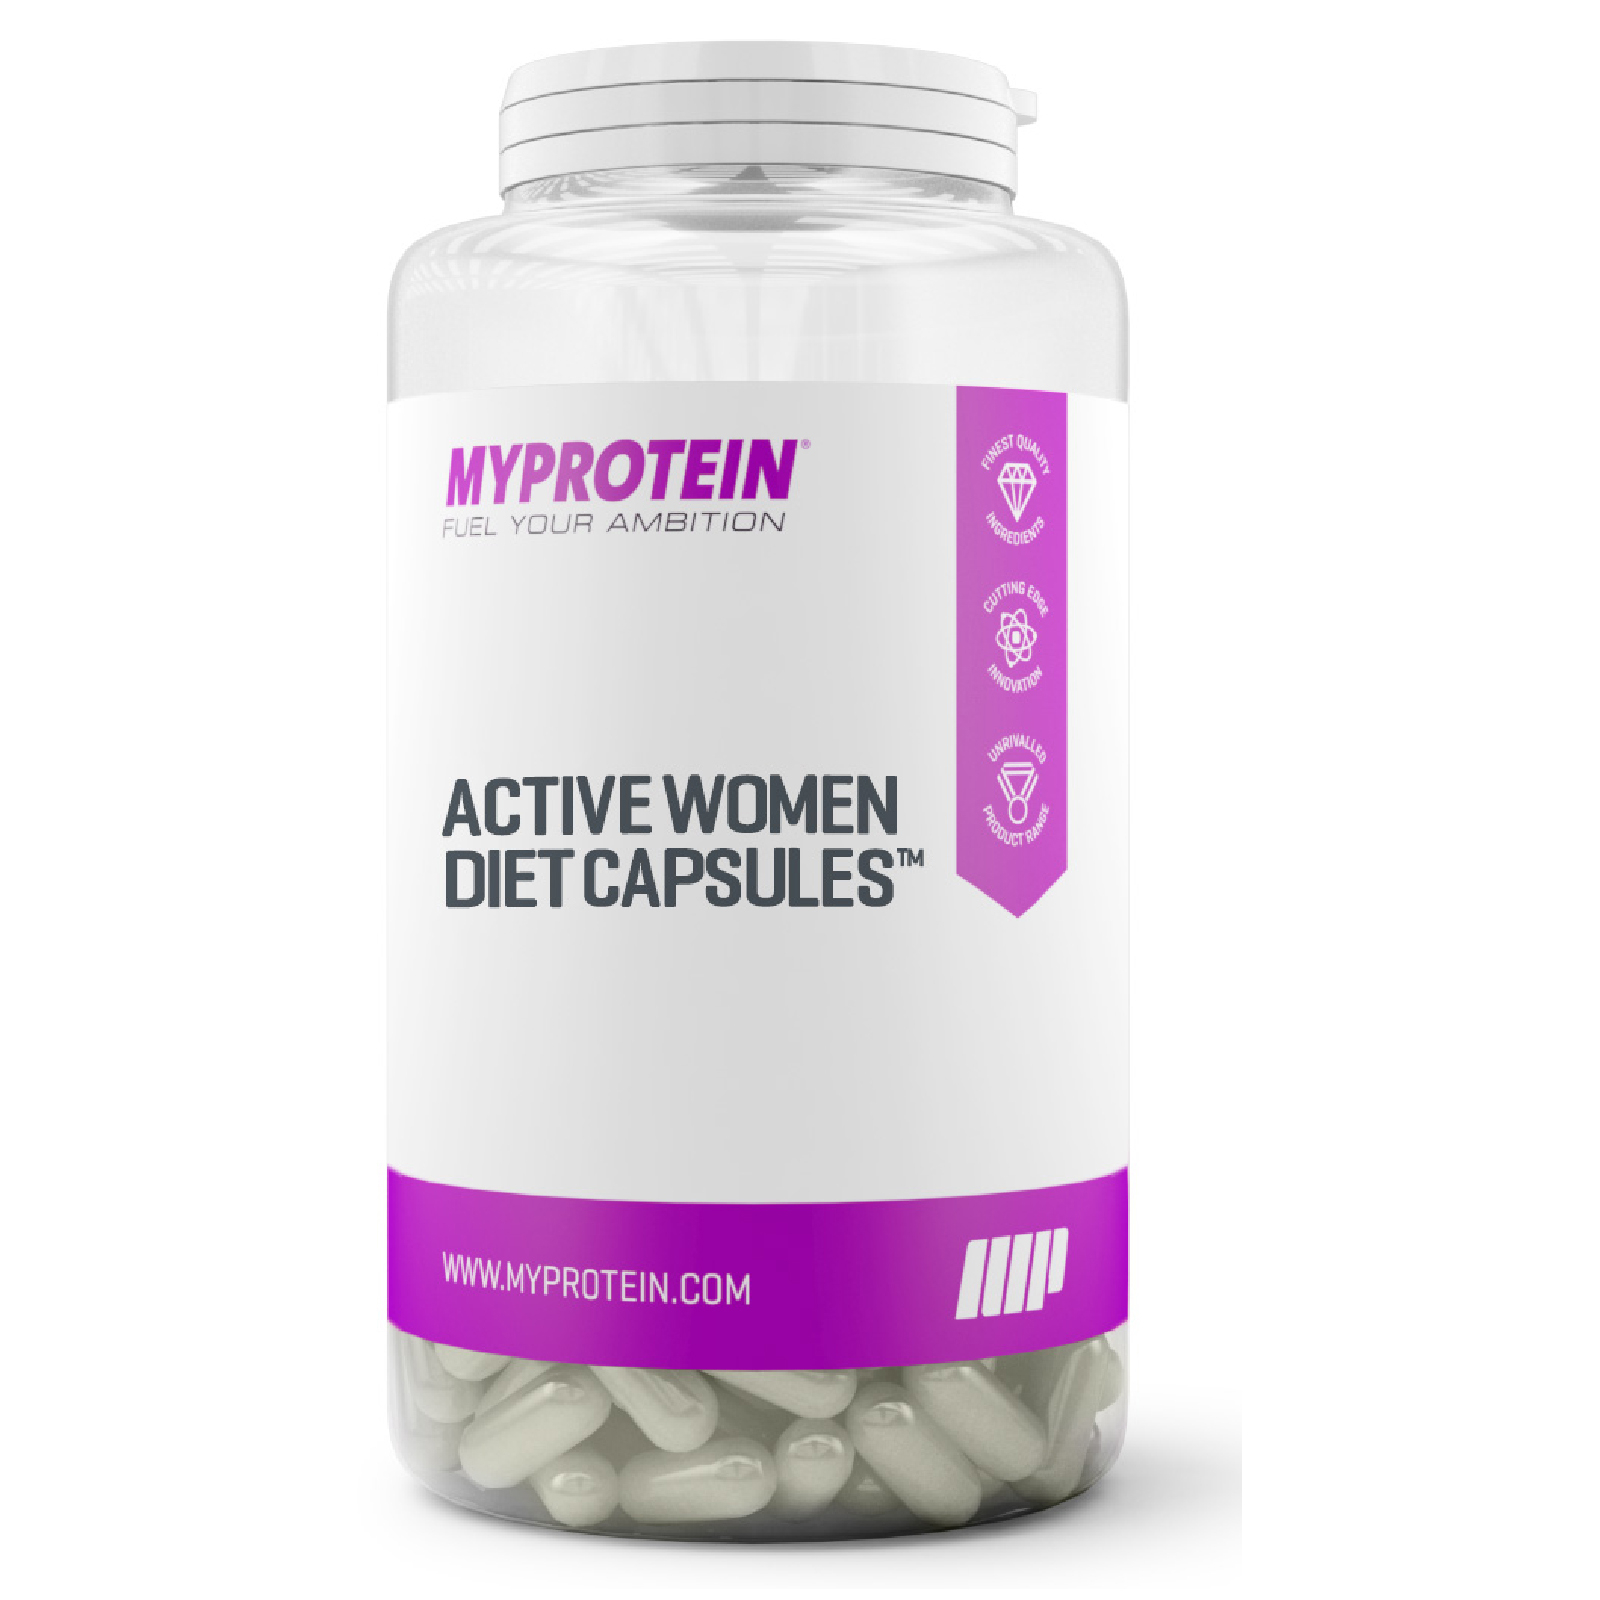 Active Woman Diet Capsules - 60 Capsules